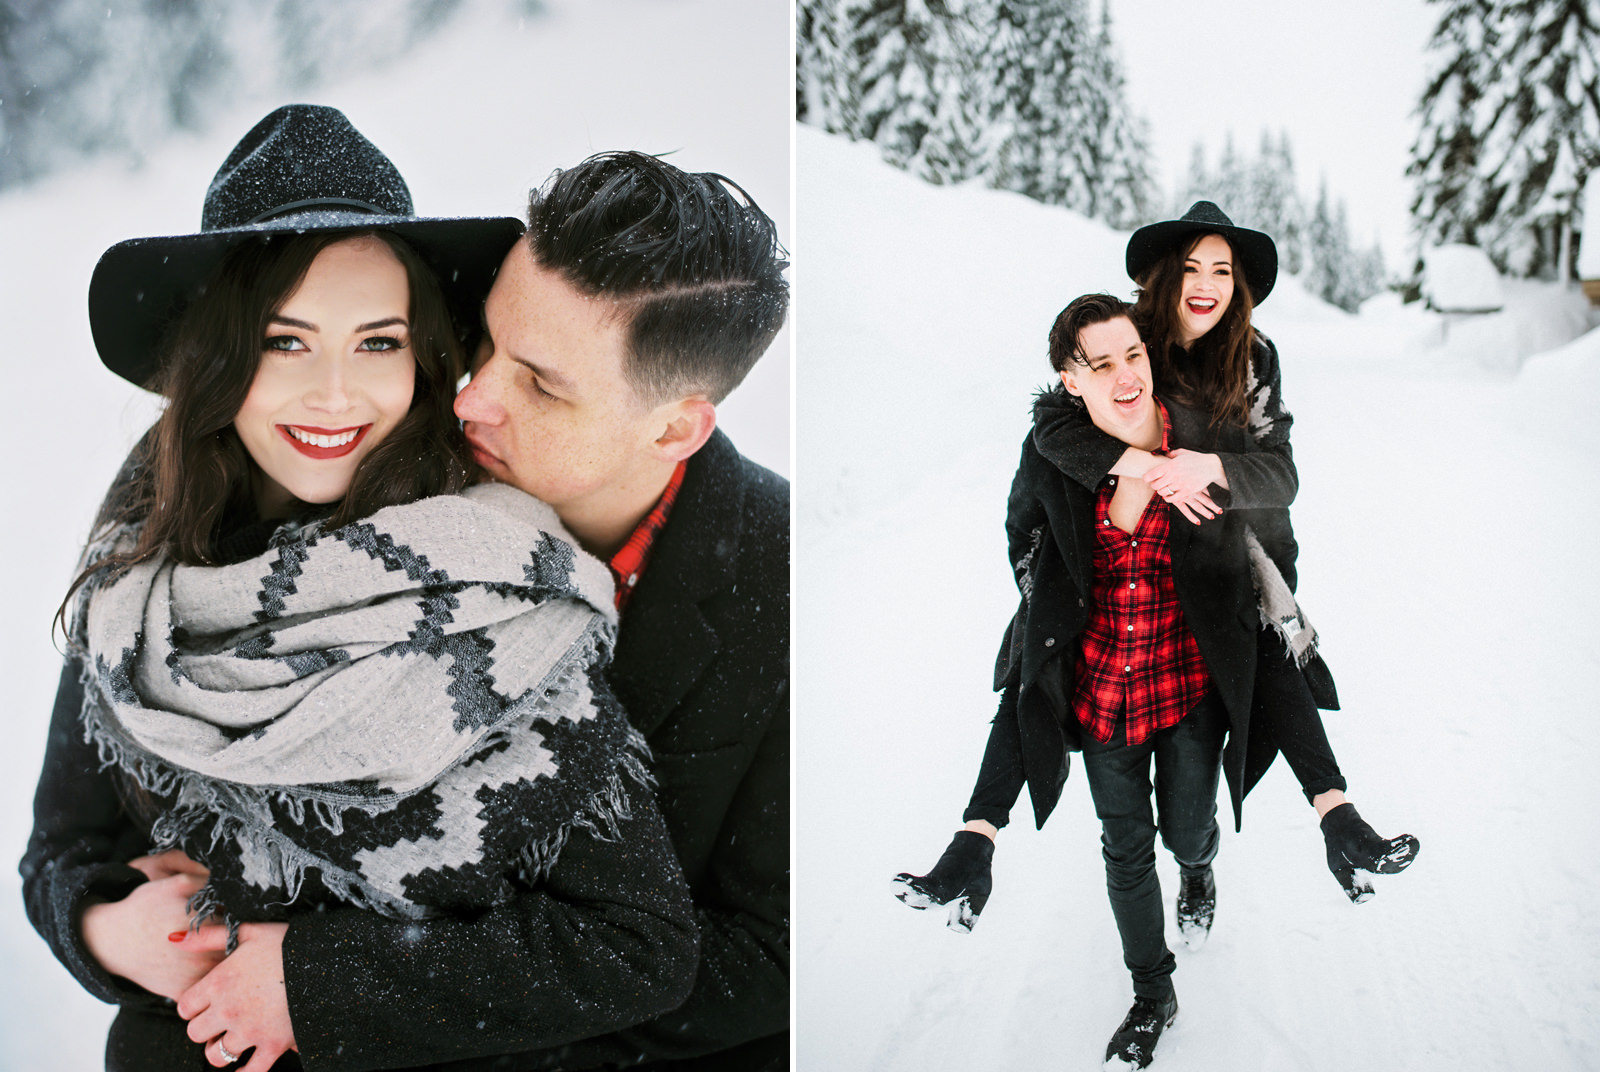 106-film-engagment-pictures-in-the-snow-by-seattle-fine-art-photographer-ryan-flynn.jpg